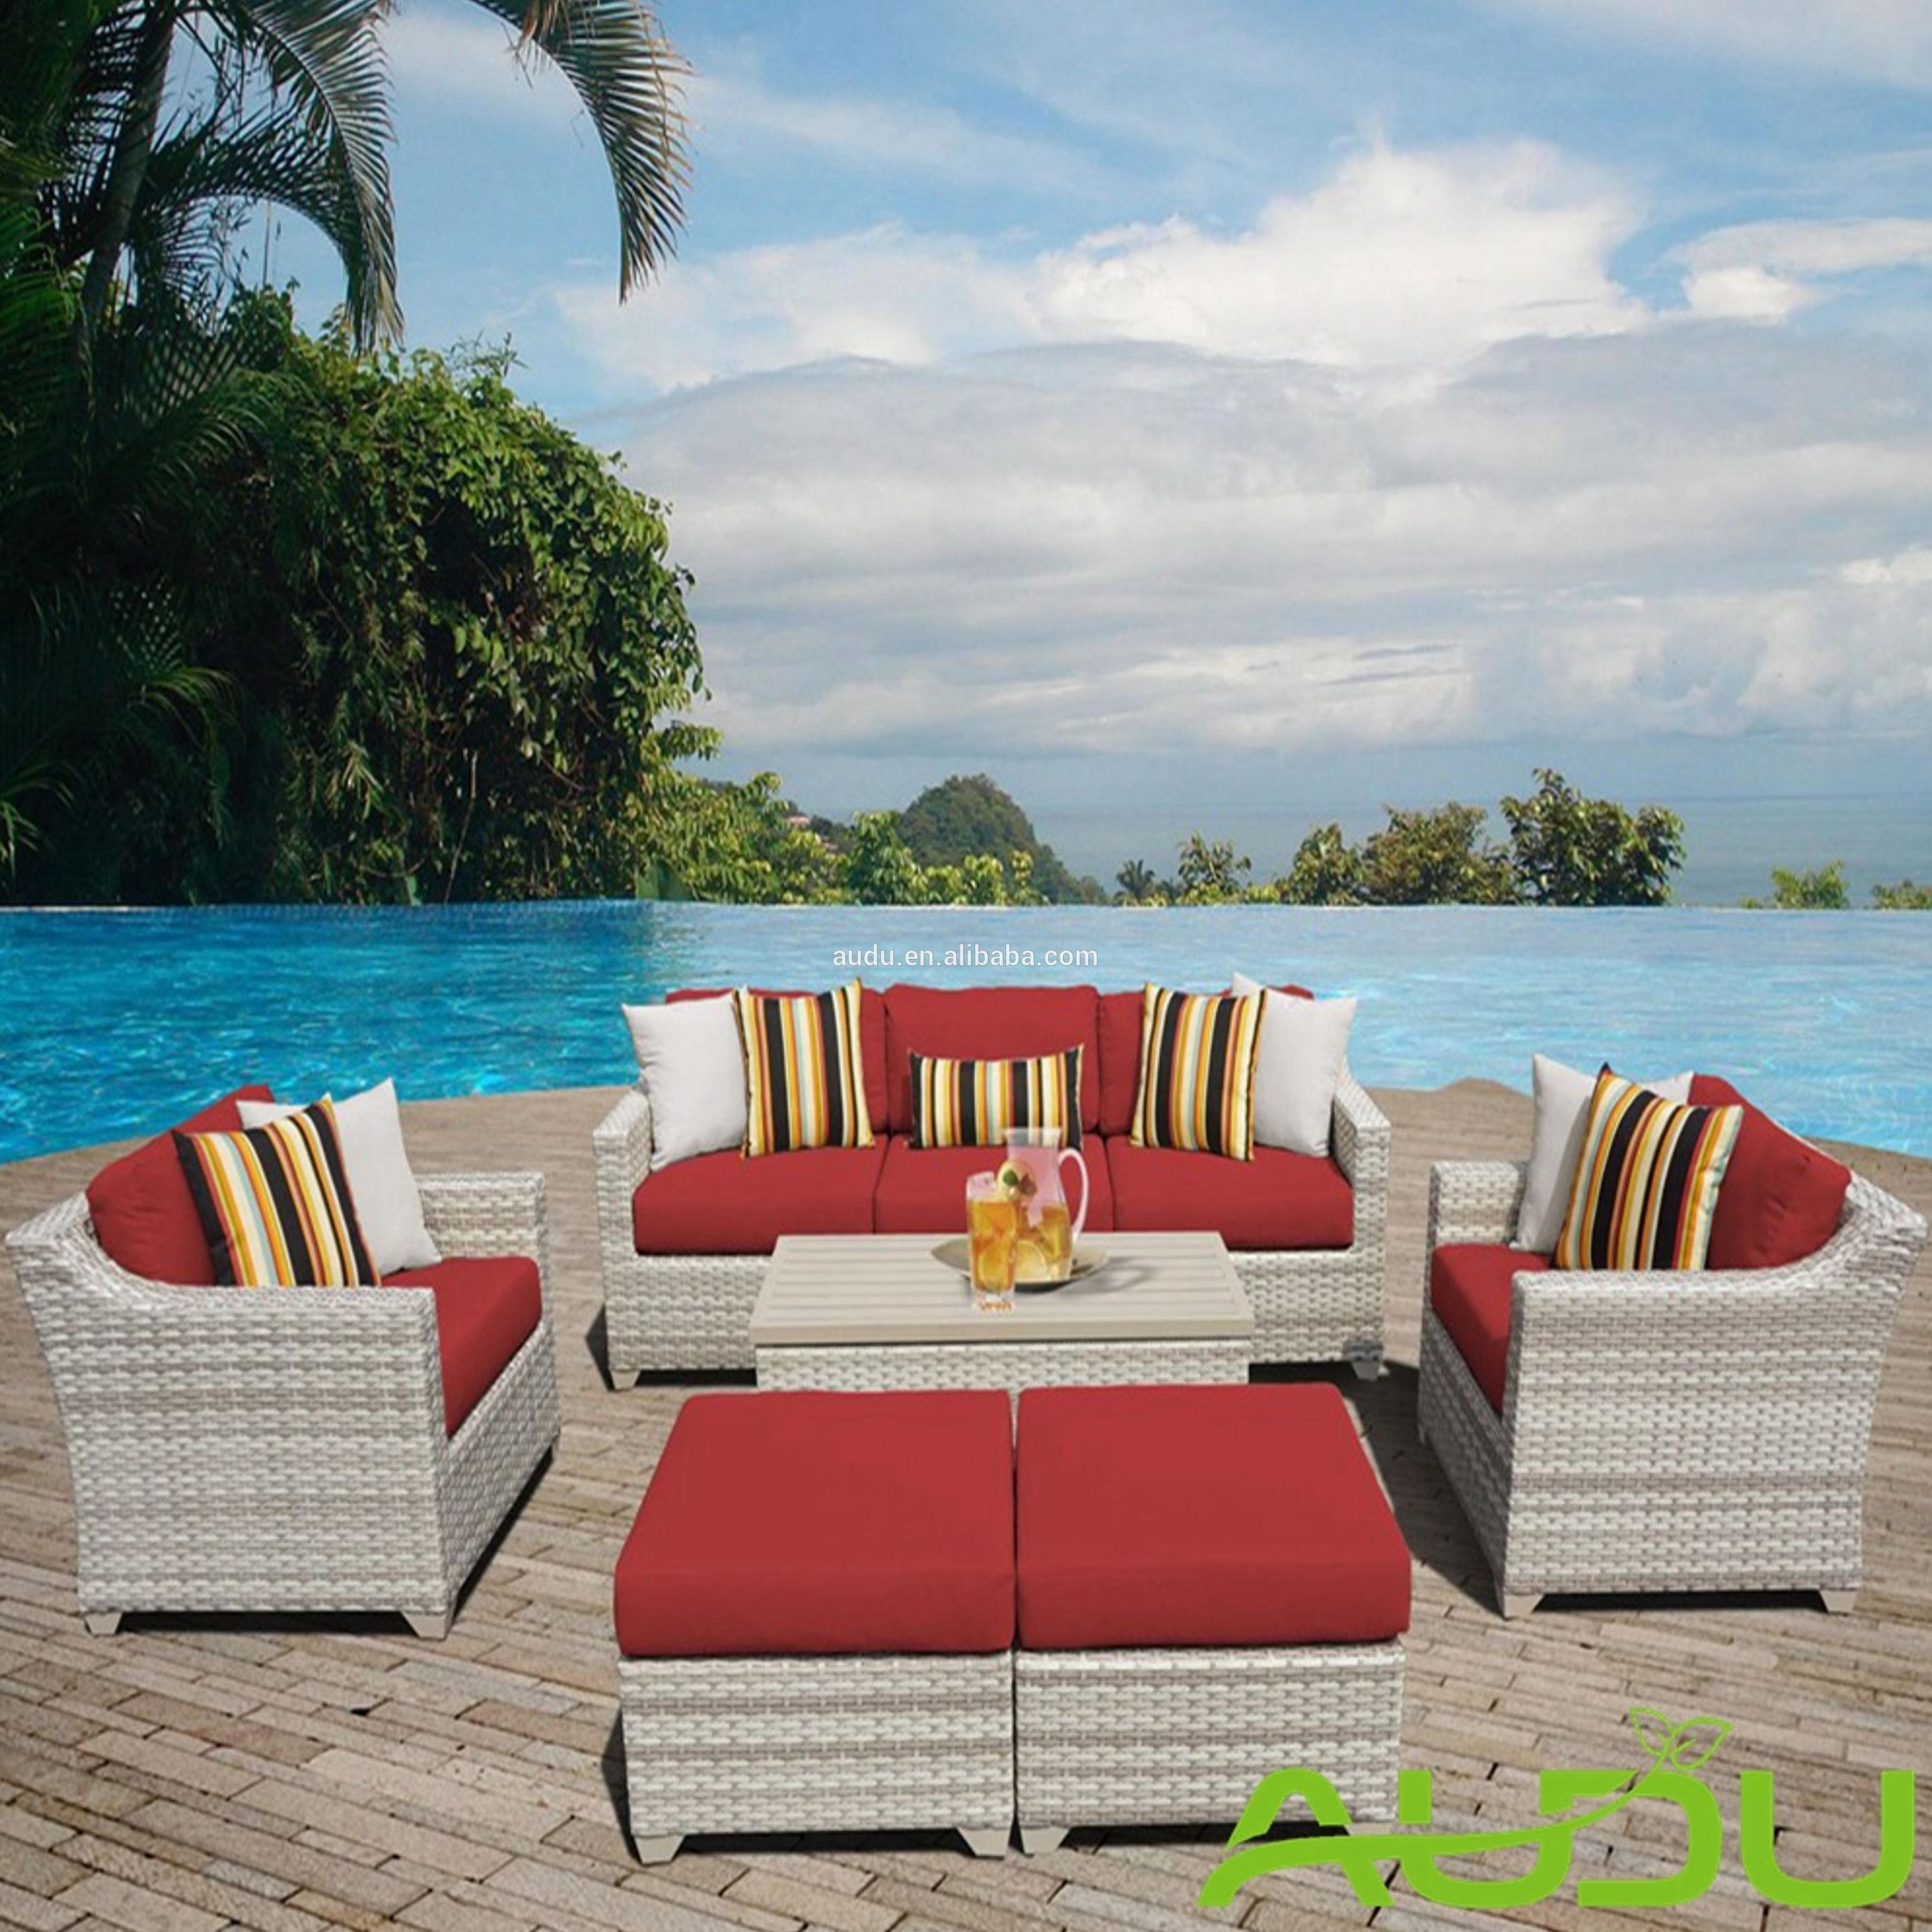 2018 New Houston rattan sofa 5pc white wicker outdoor garden patio balcony furniture